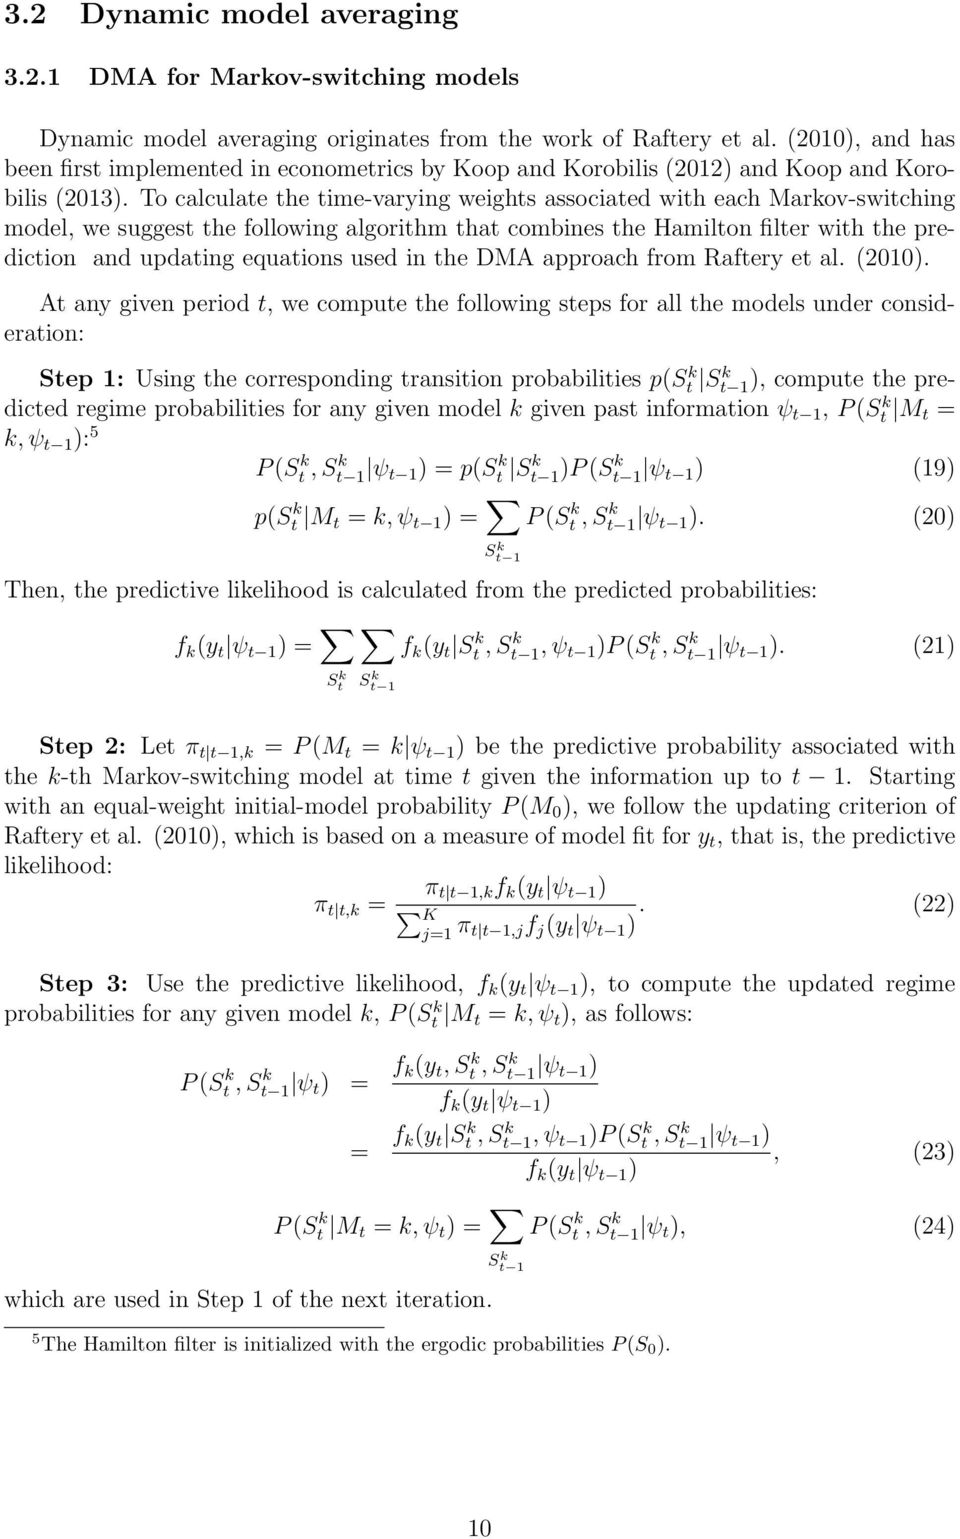 To calculate the time-varying weights associated with each Markov-switching model, we suggest the following algorithm that combines the Hamilton filter with the prediction and updating equations used